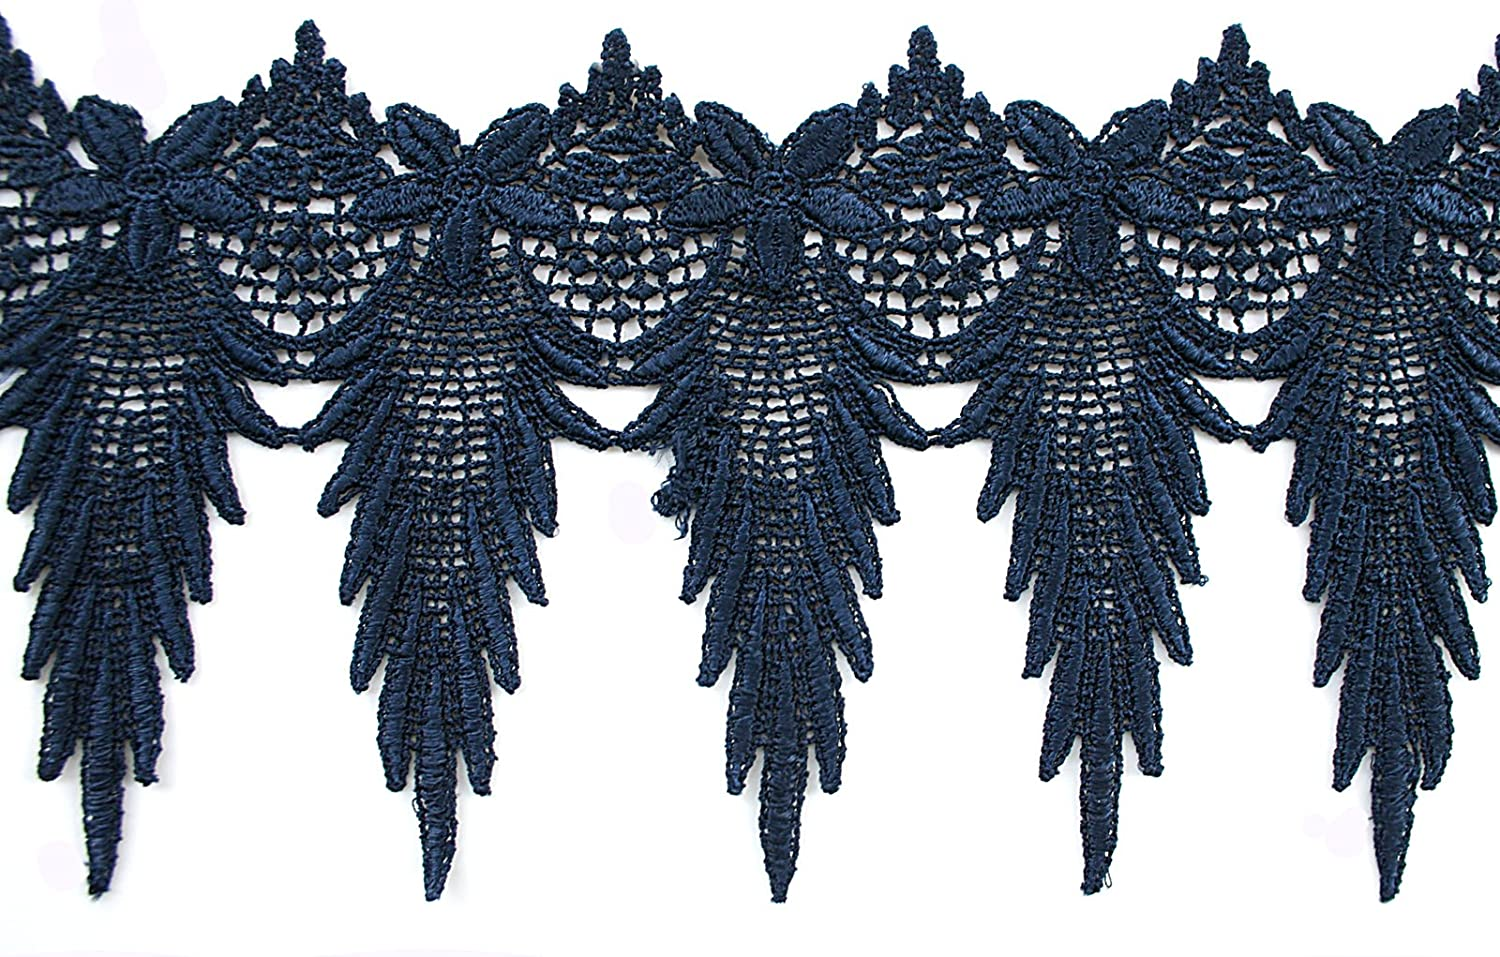 Black Altotux 6 Royal Blue Turquoise Navy Light Blue Lime Green White Ivory Black Embroidered Scalloped Venice Lace Trim Guipure Trimming By Yard